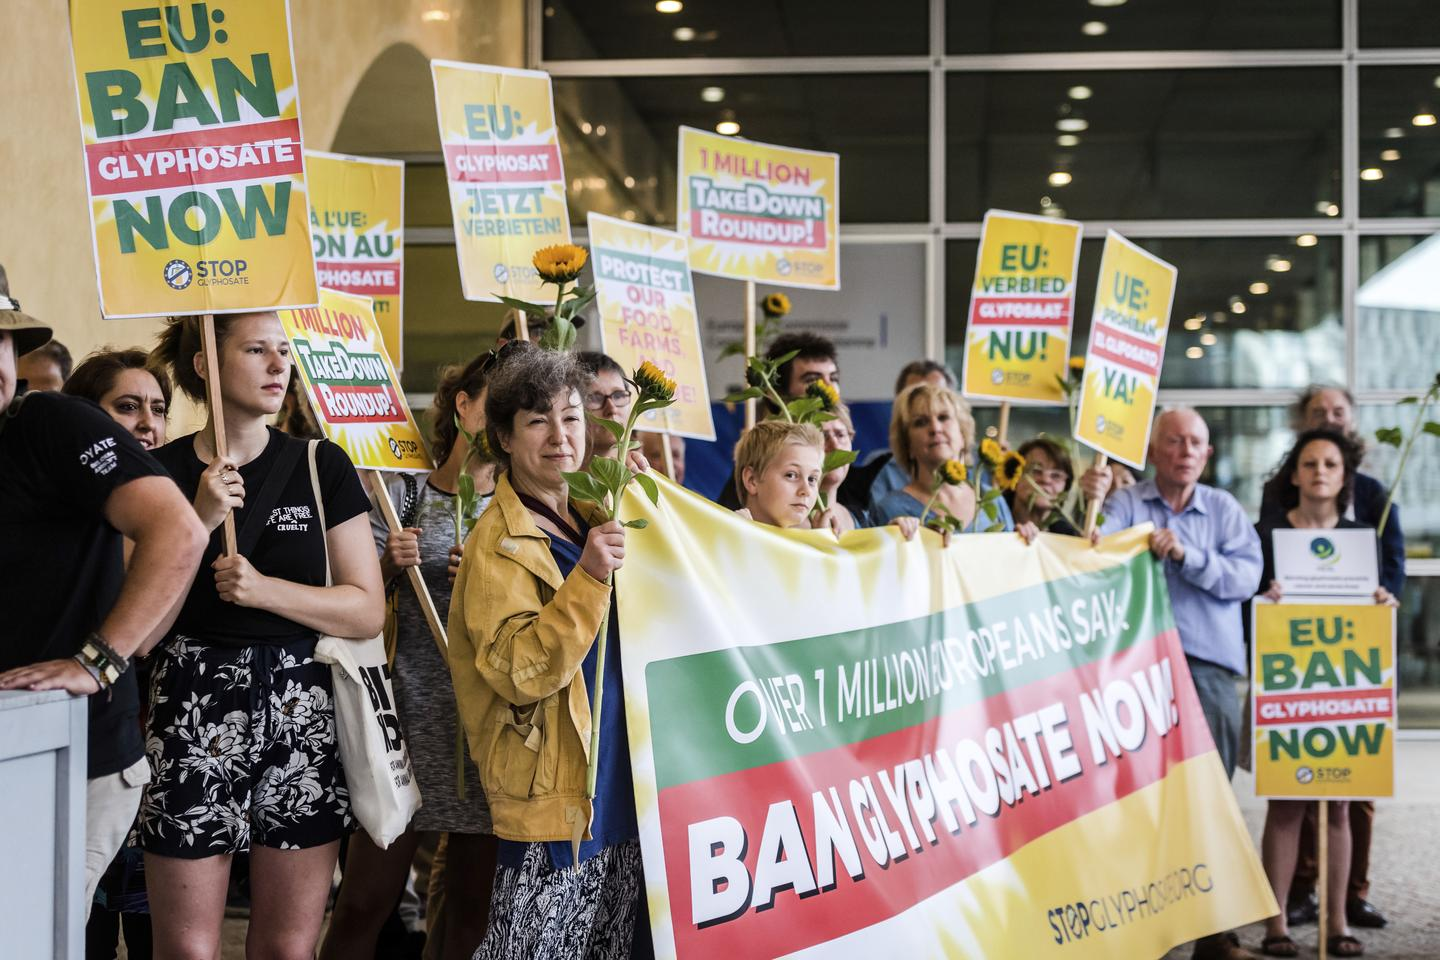 Anti-Glyphosate Campaigners Cling to a Science Fiction